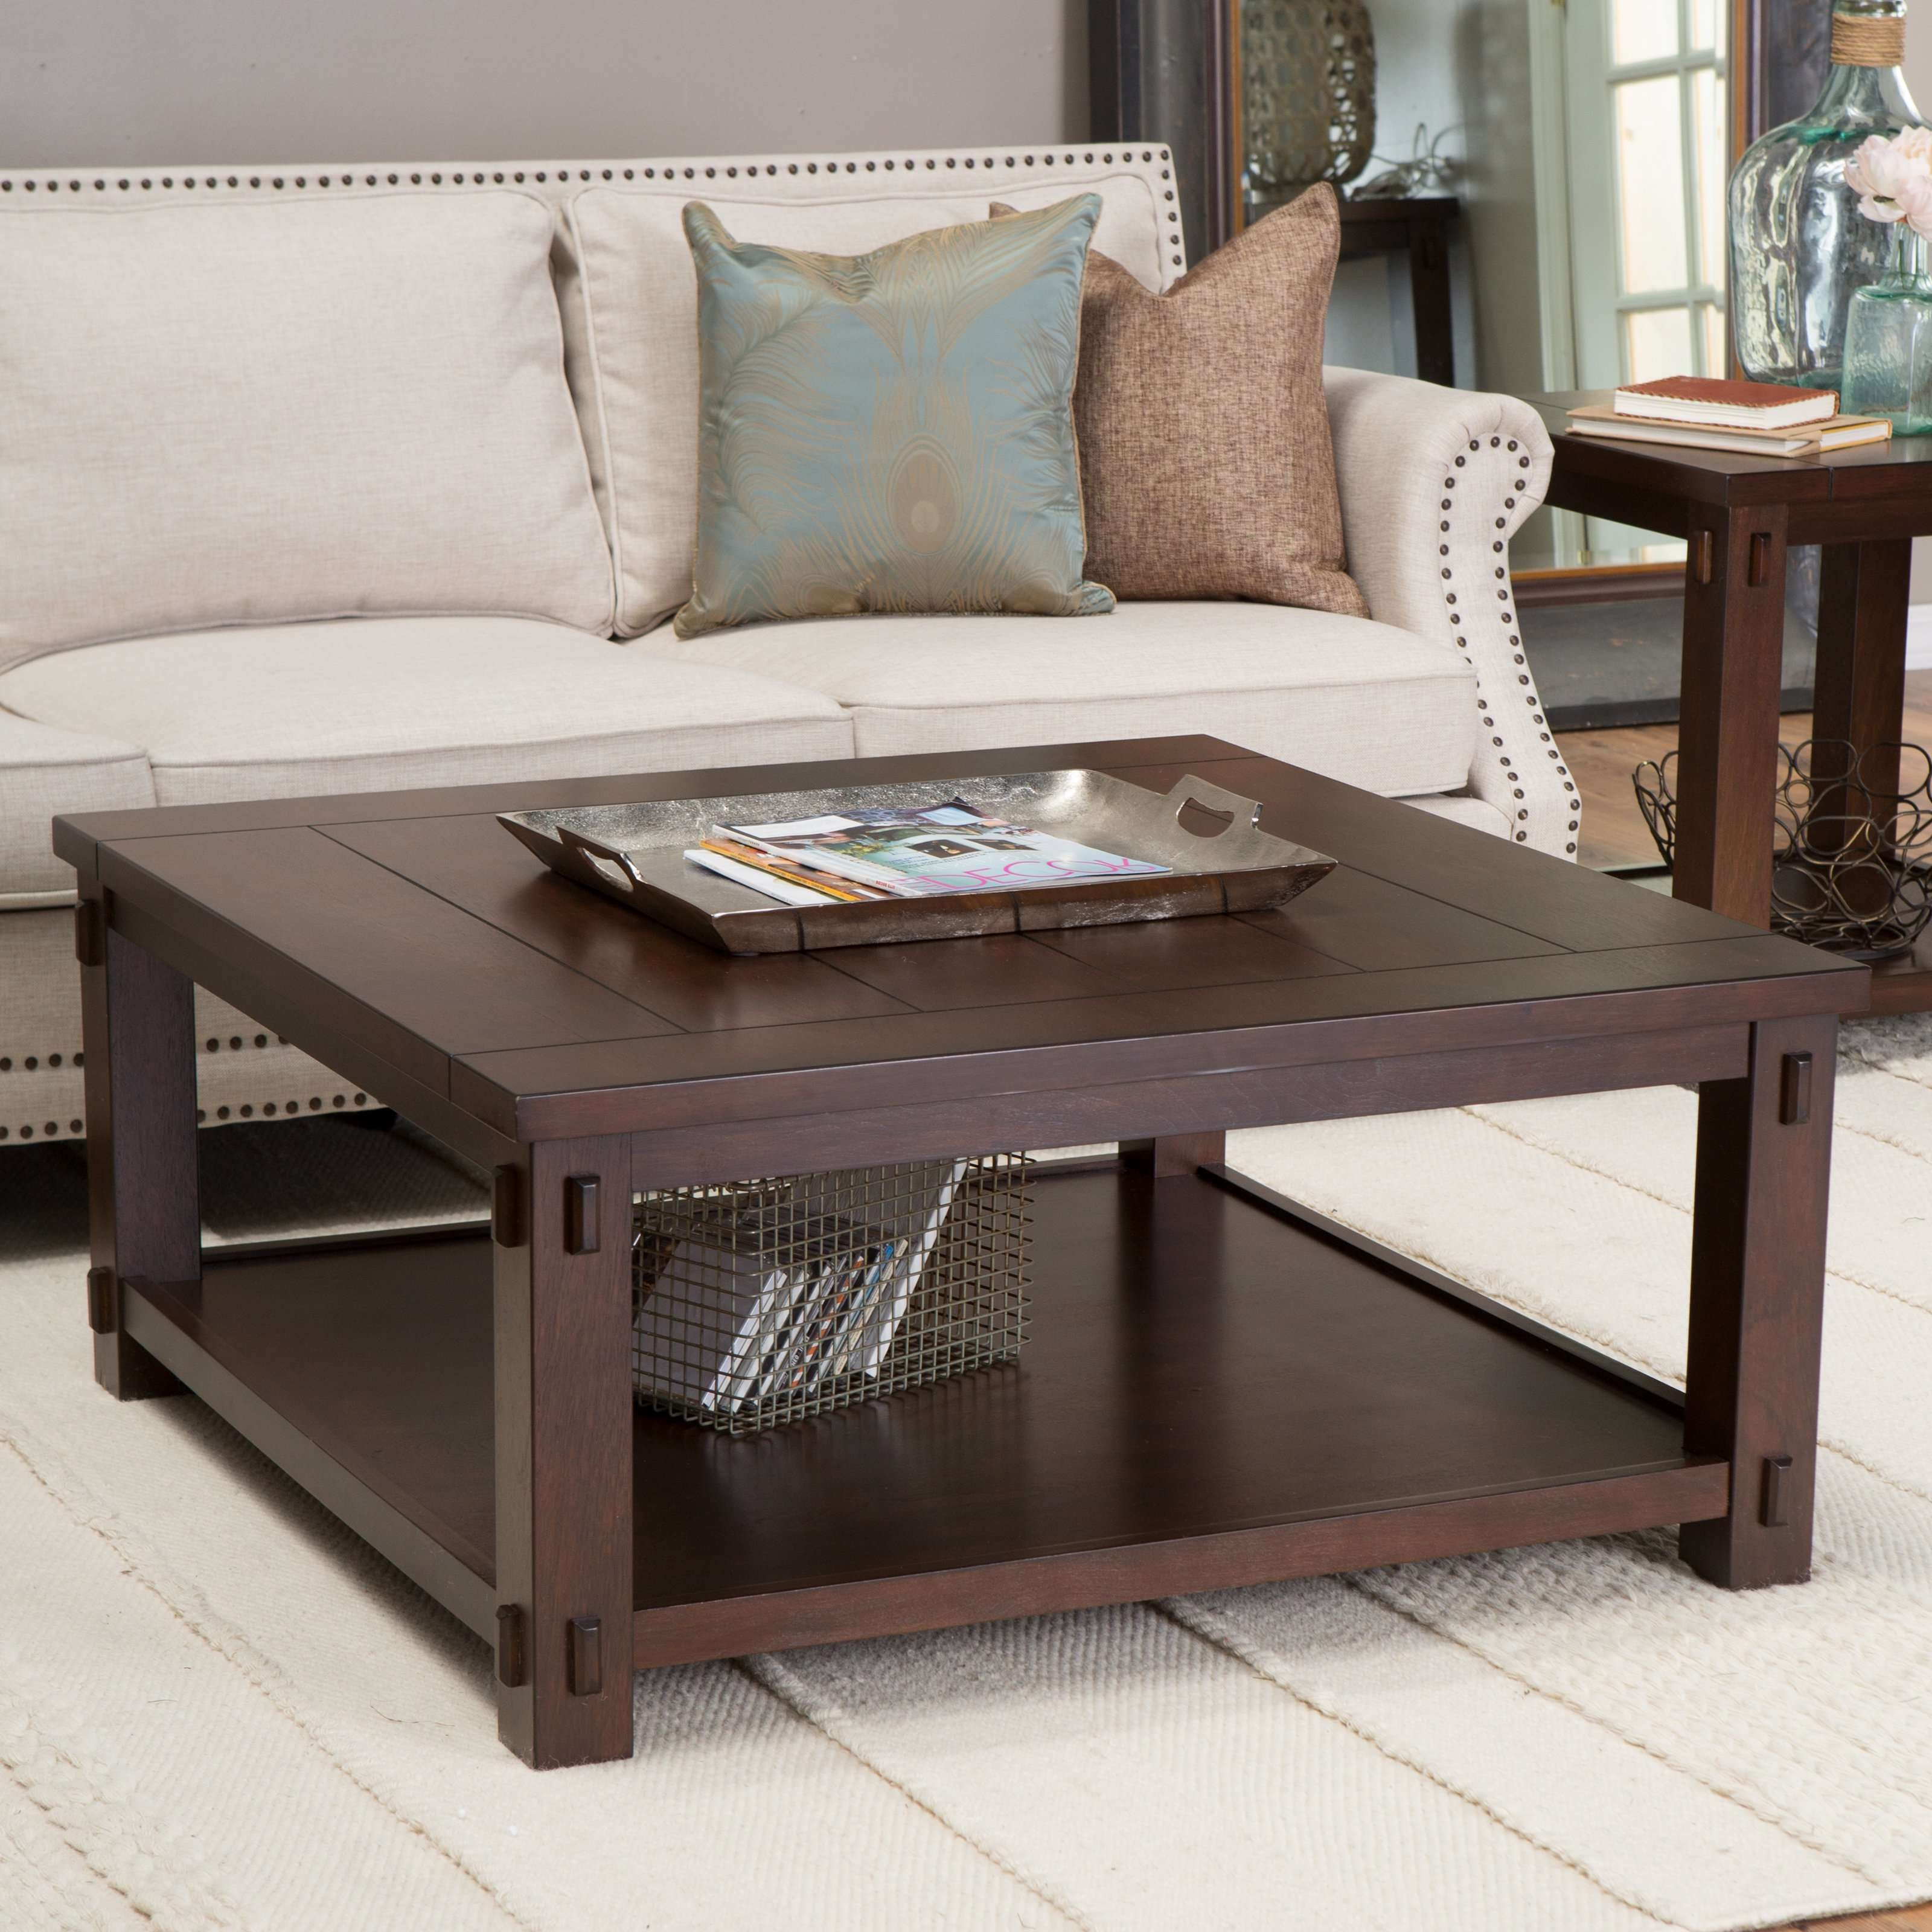 Coffee Tables : Popular Square Black Leather Upholstered Ottoman For Recent Dark Wood Square Coffee Tables (View 7 of 20)